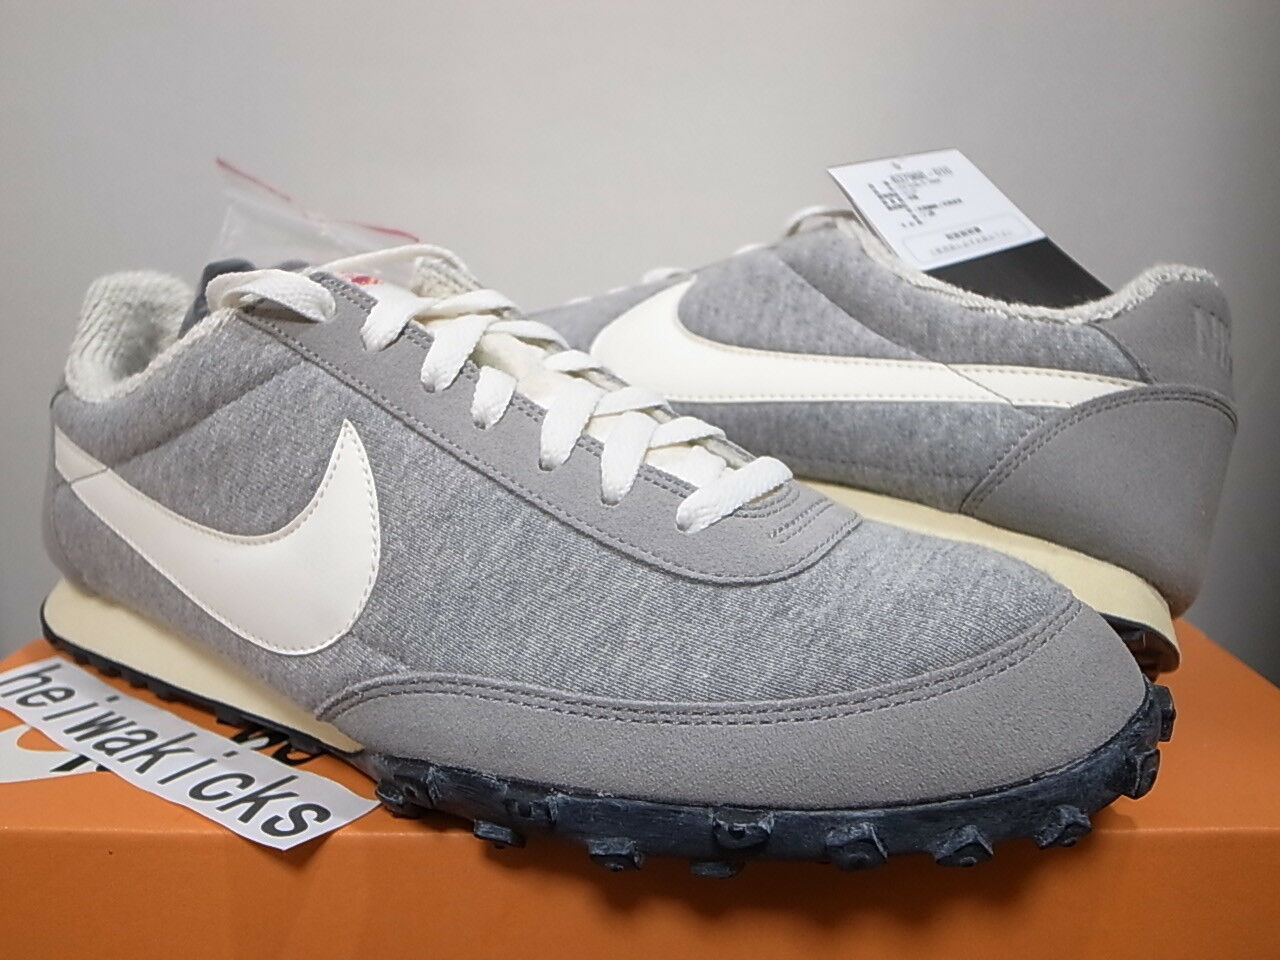 2013 LOOPWHEELER x NIKE WAFFLE RACER PRM MEDIUM GREY JAPAN ONLY637988-010 sz 11